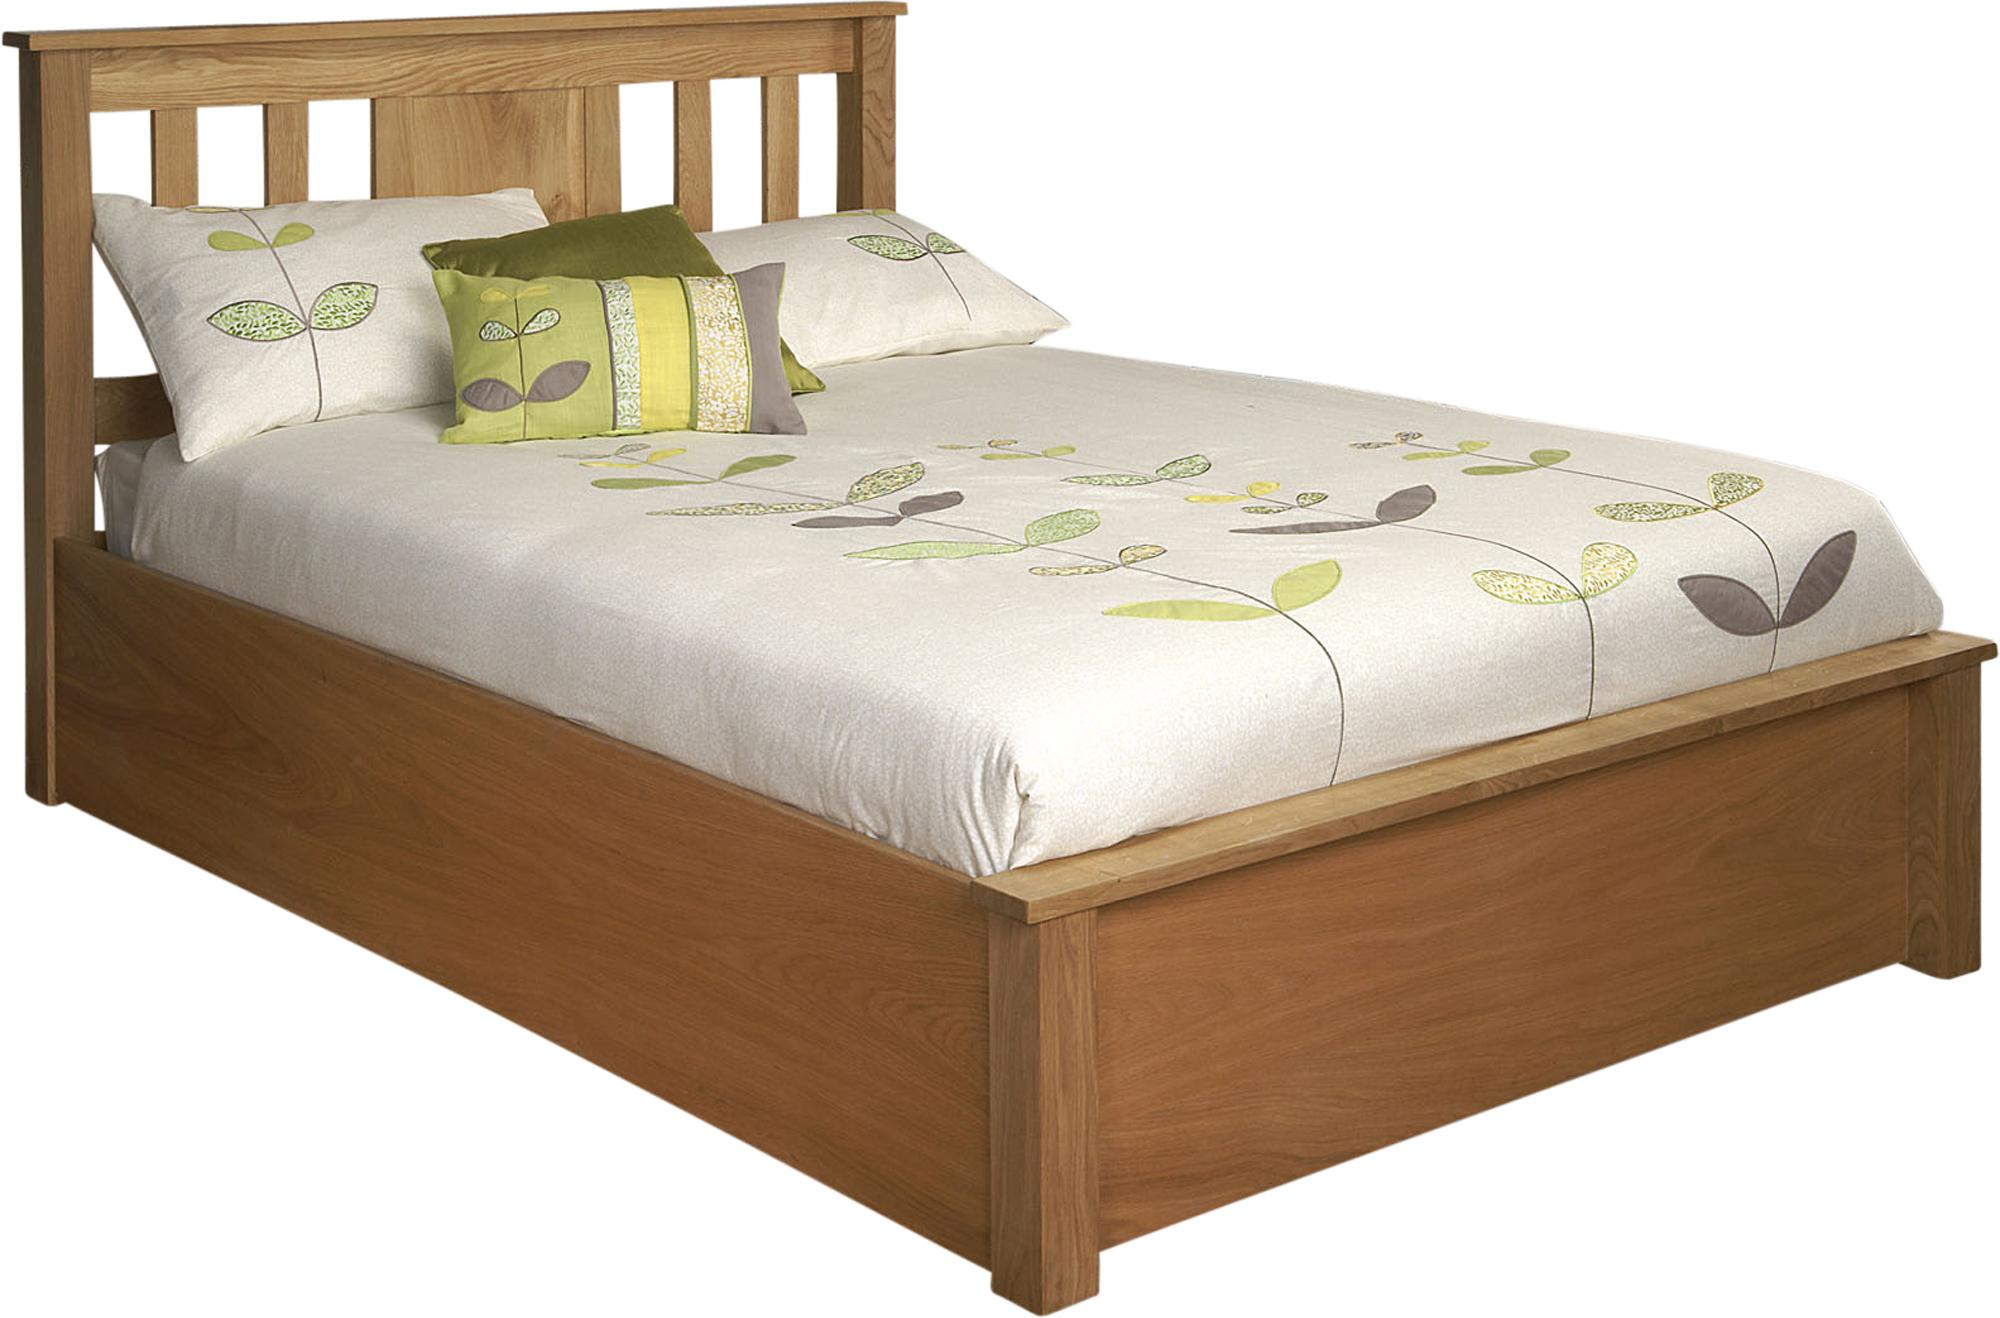 Oak ottoman shop for cheap beds and save online Really cheap beds